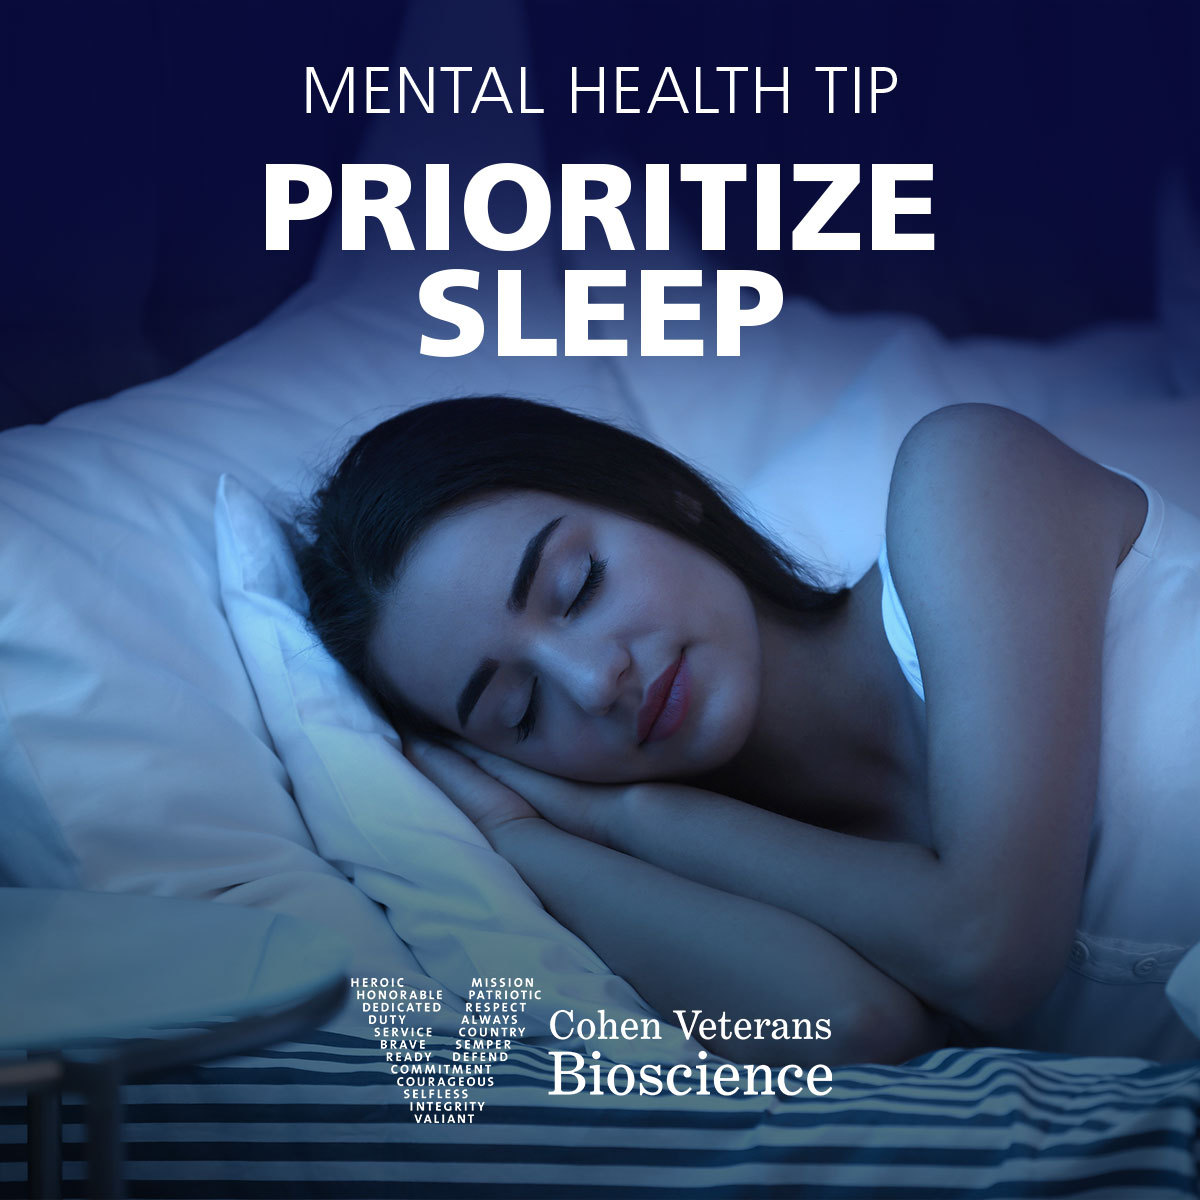 Mental Health Tip: Prioritize Sleep